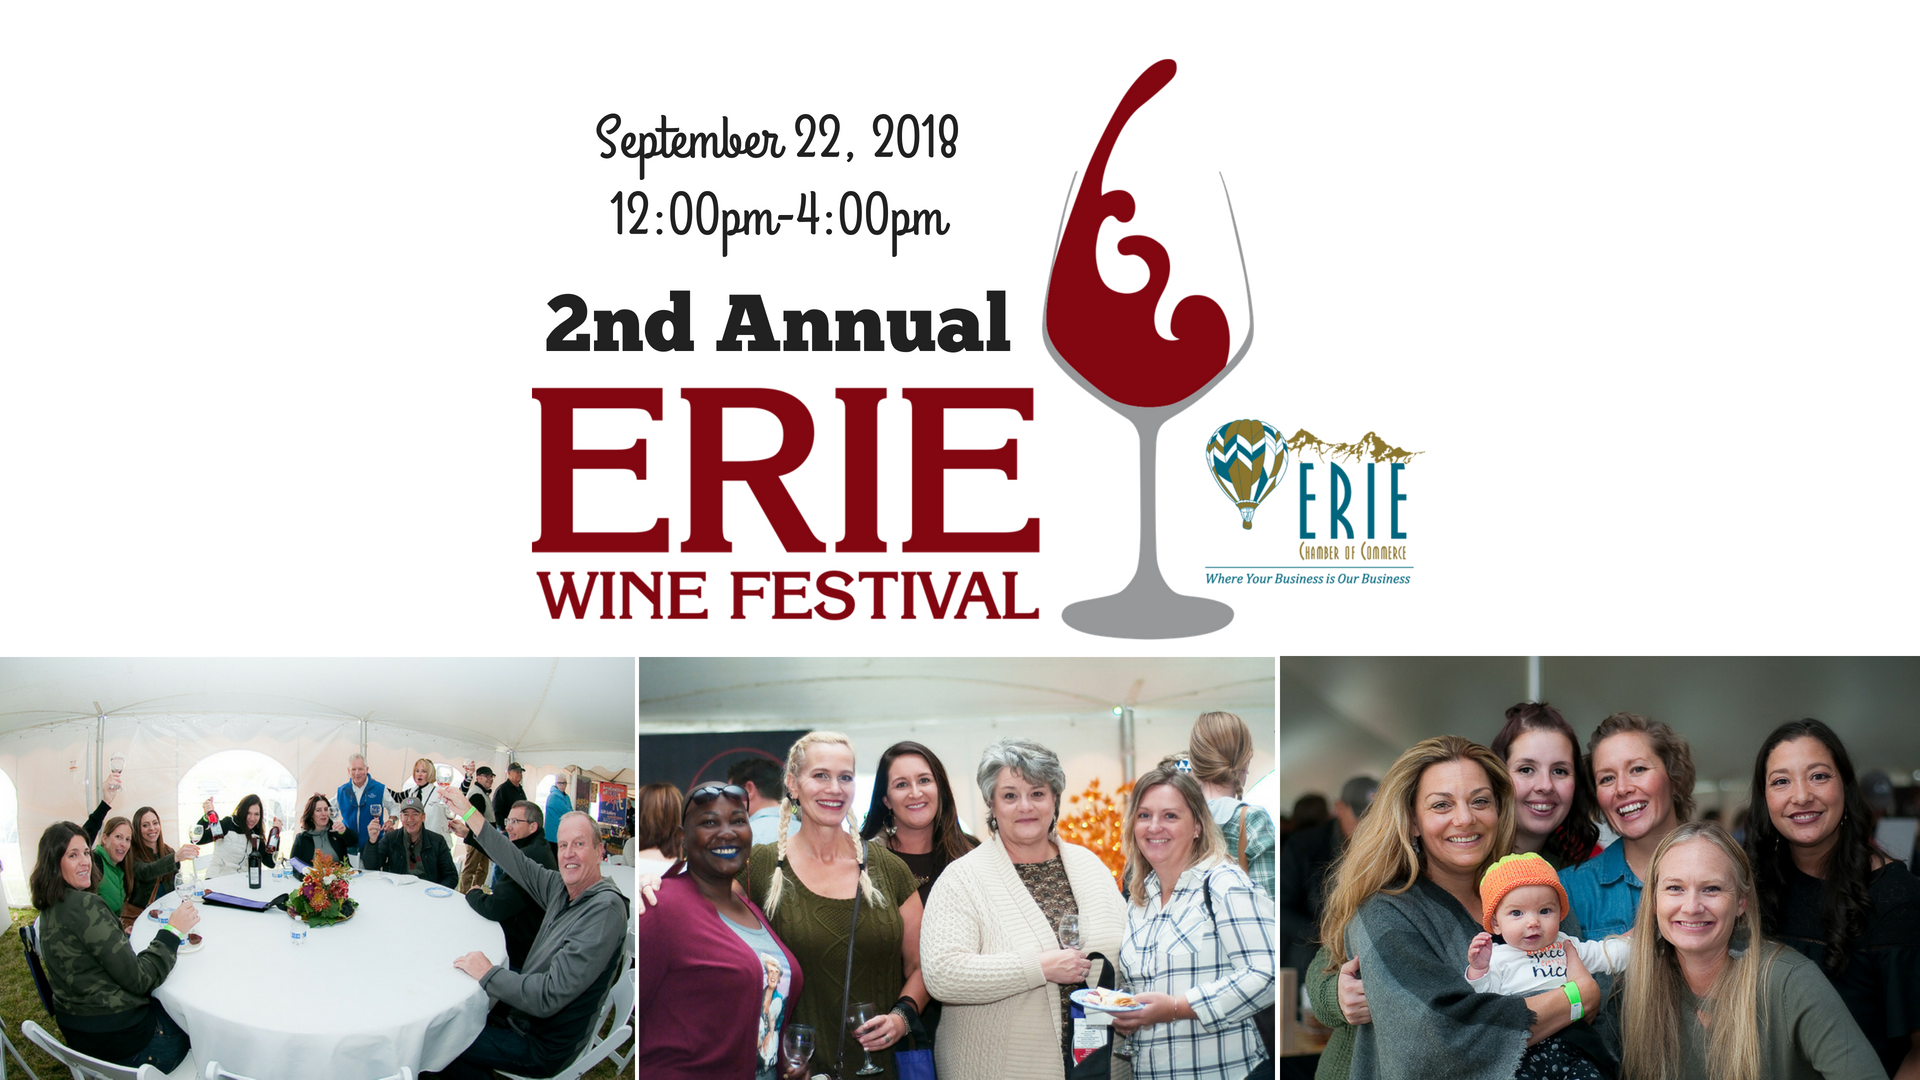 2nd Annual Erie Wine Festival